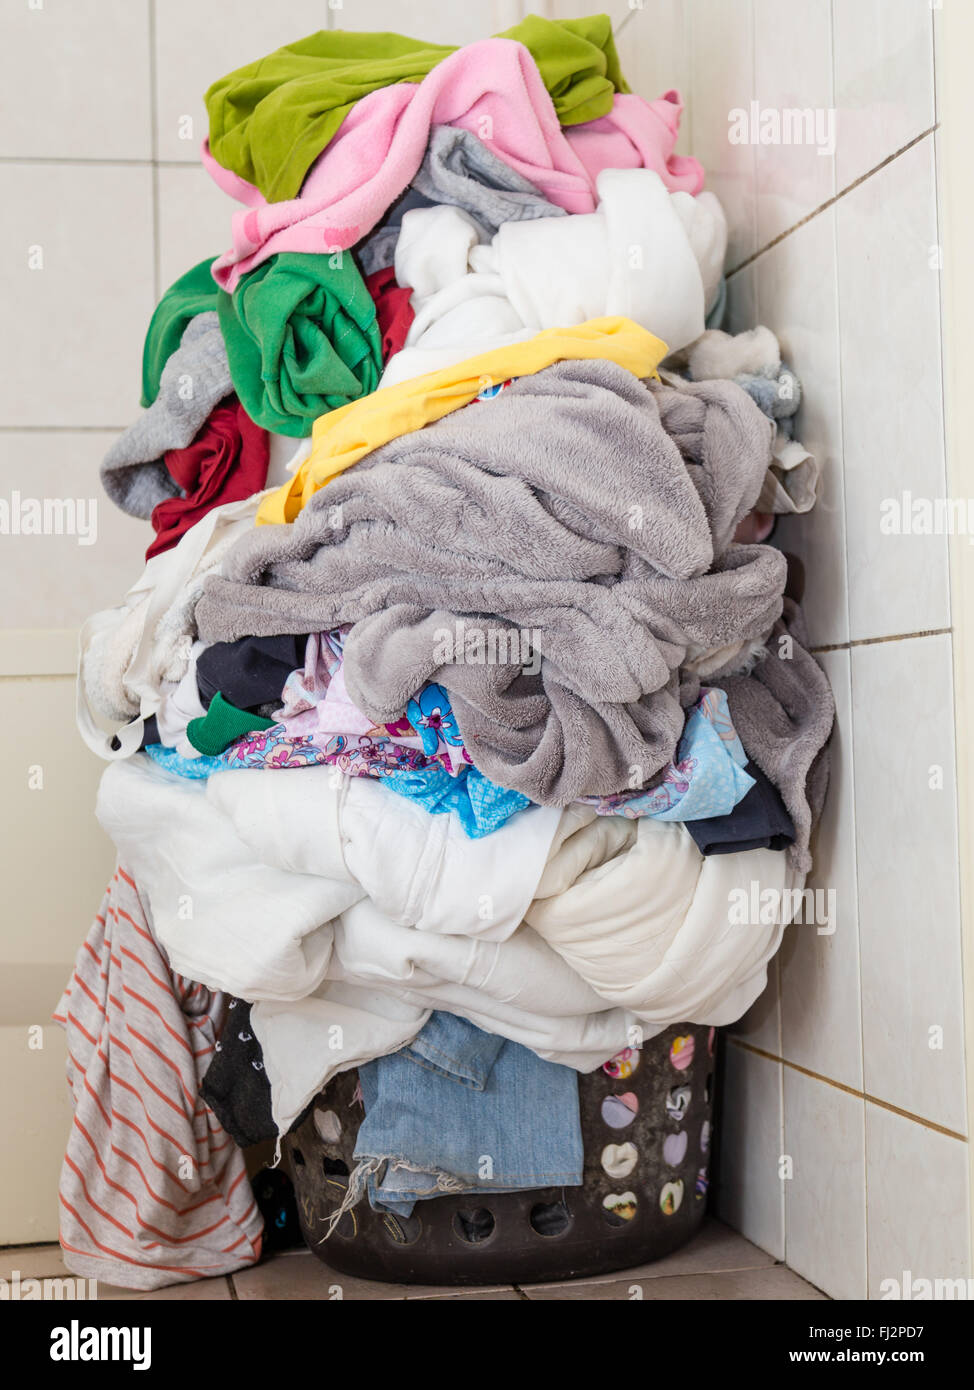 Laundr basket overflowing with dirty clothes and blankets - Stock Image